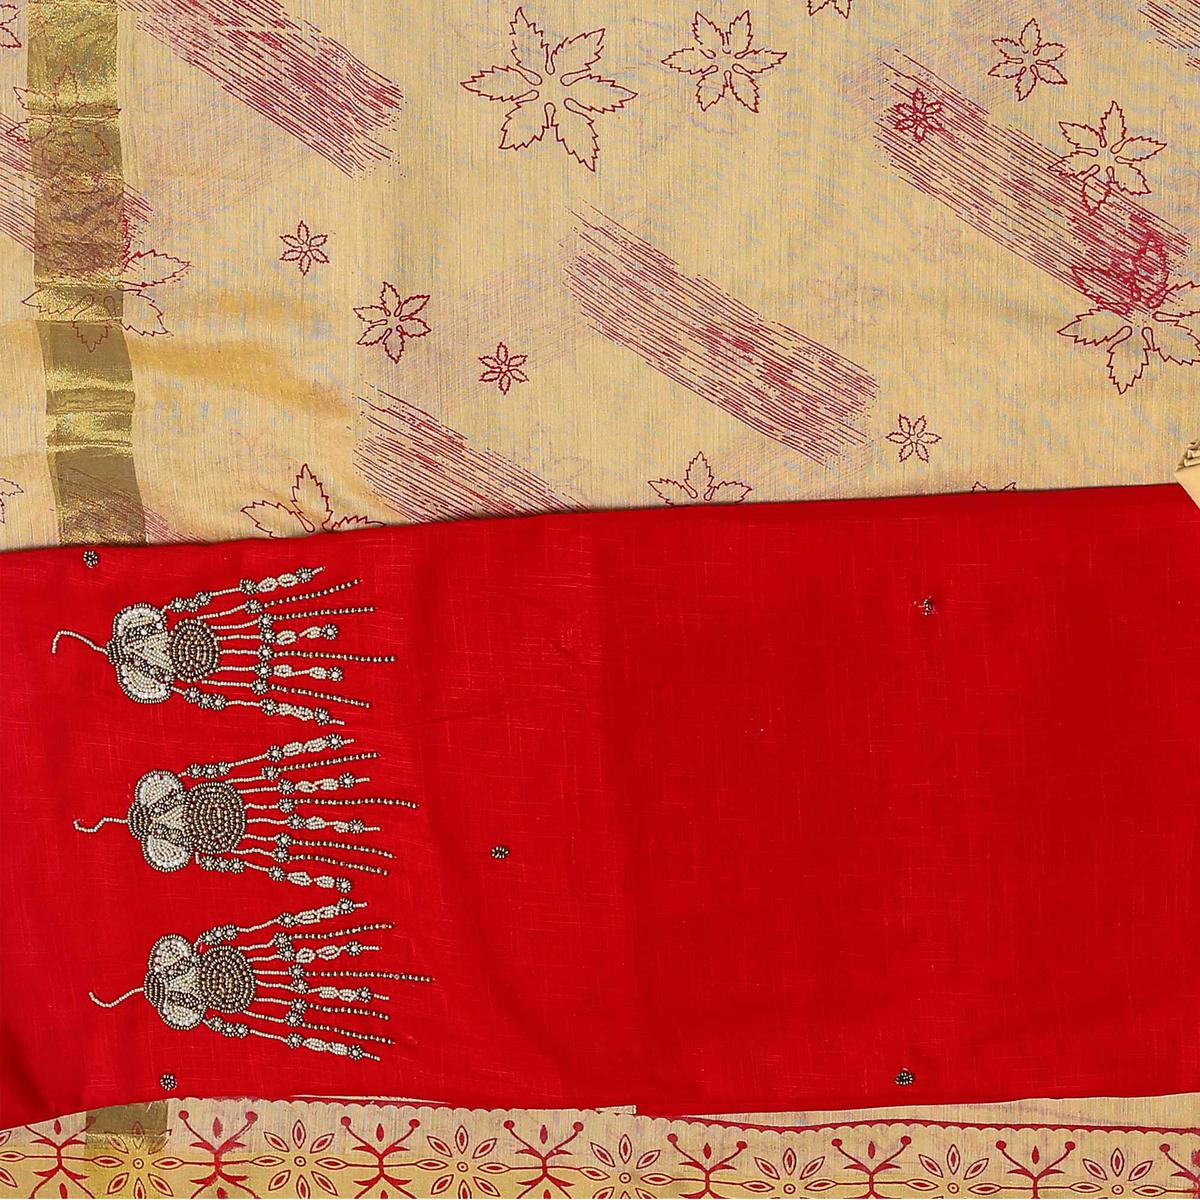 Dazzling Red-Beige Colored Embroidered Chanderi Cotton Dress Material